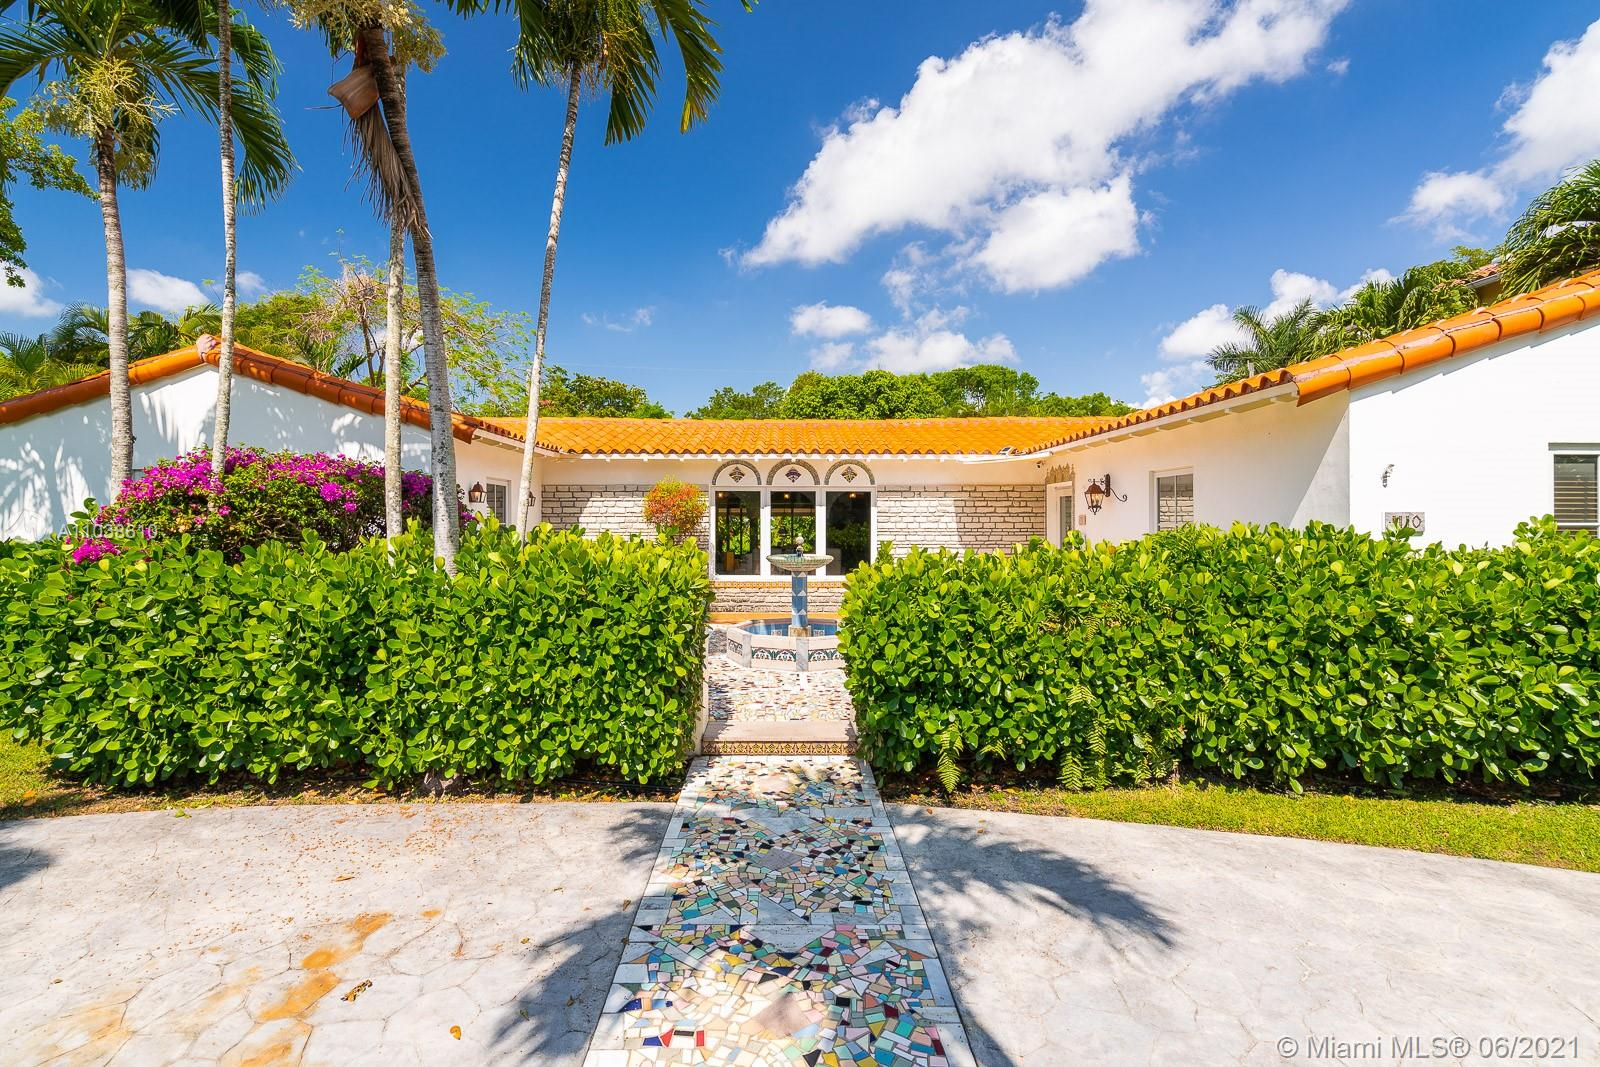 Tamiami Place - 1110 Wallace St, Coral Gables, FL 33134